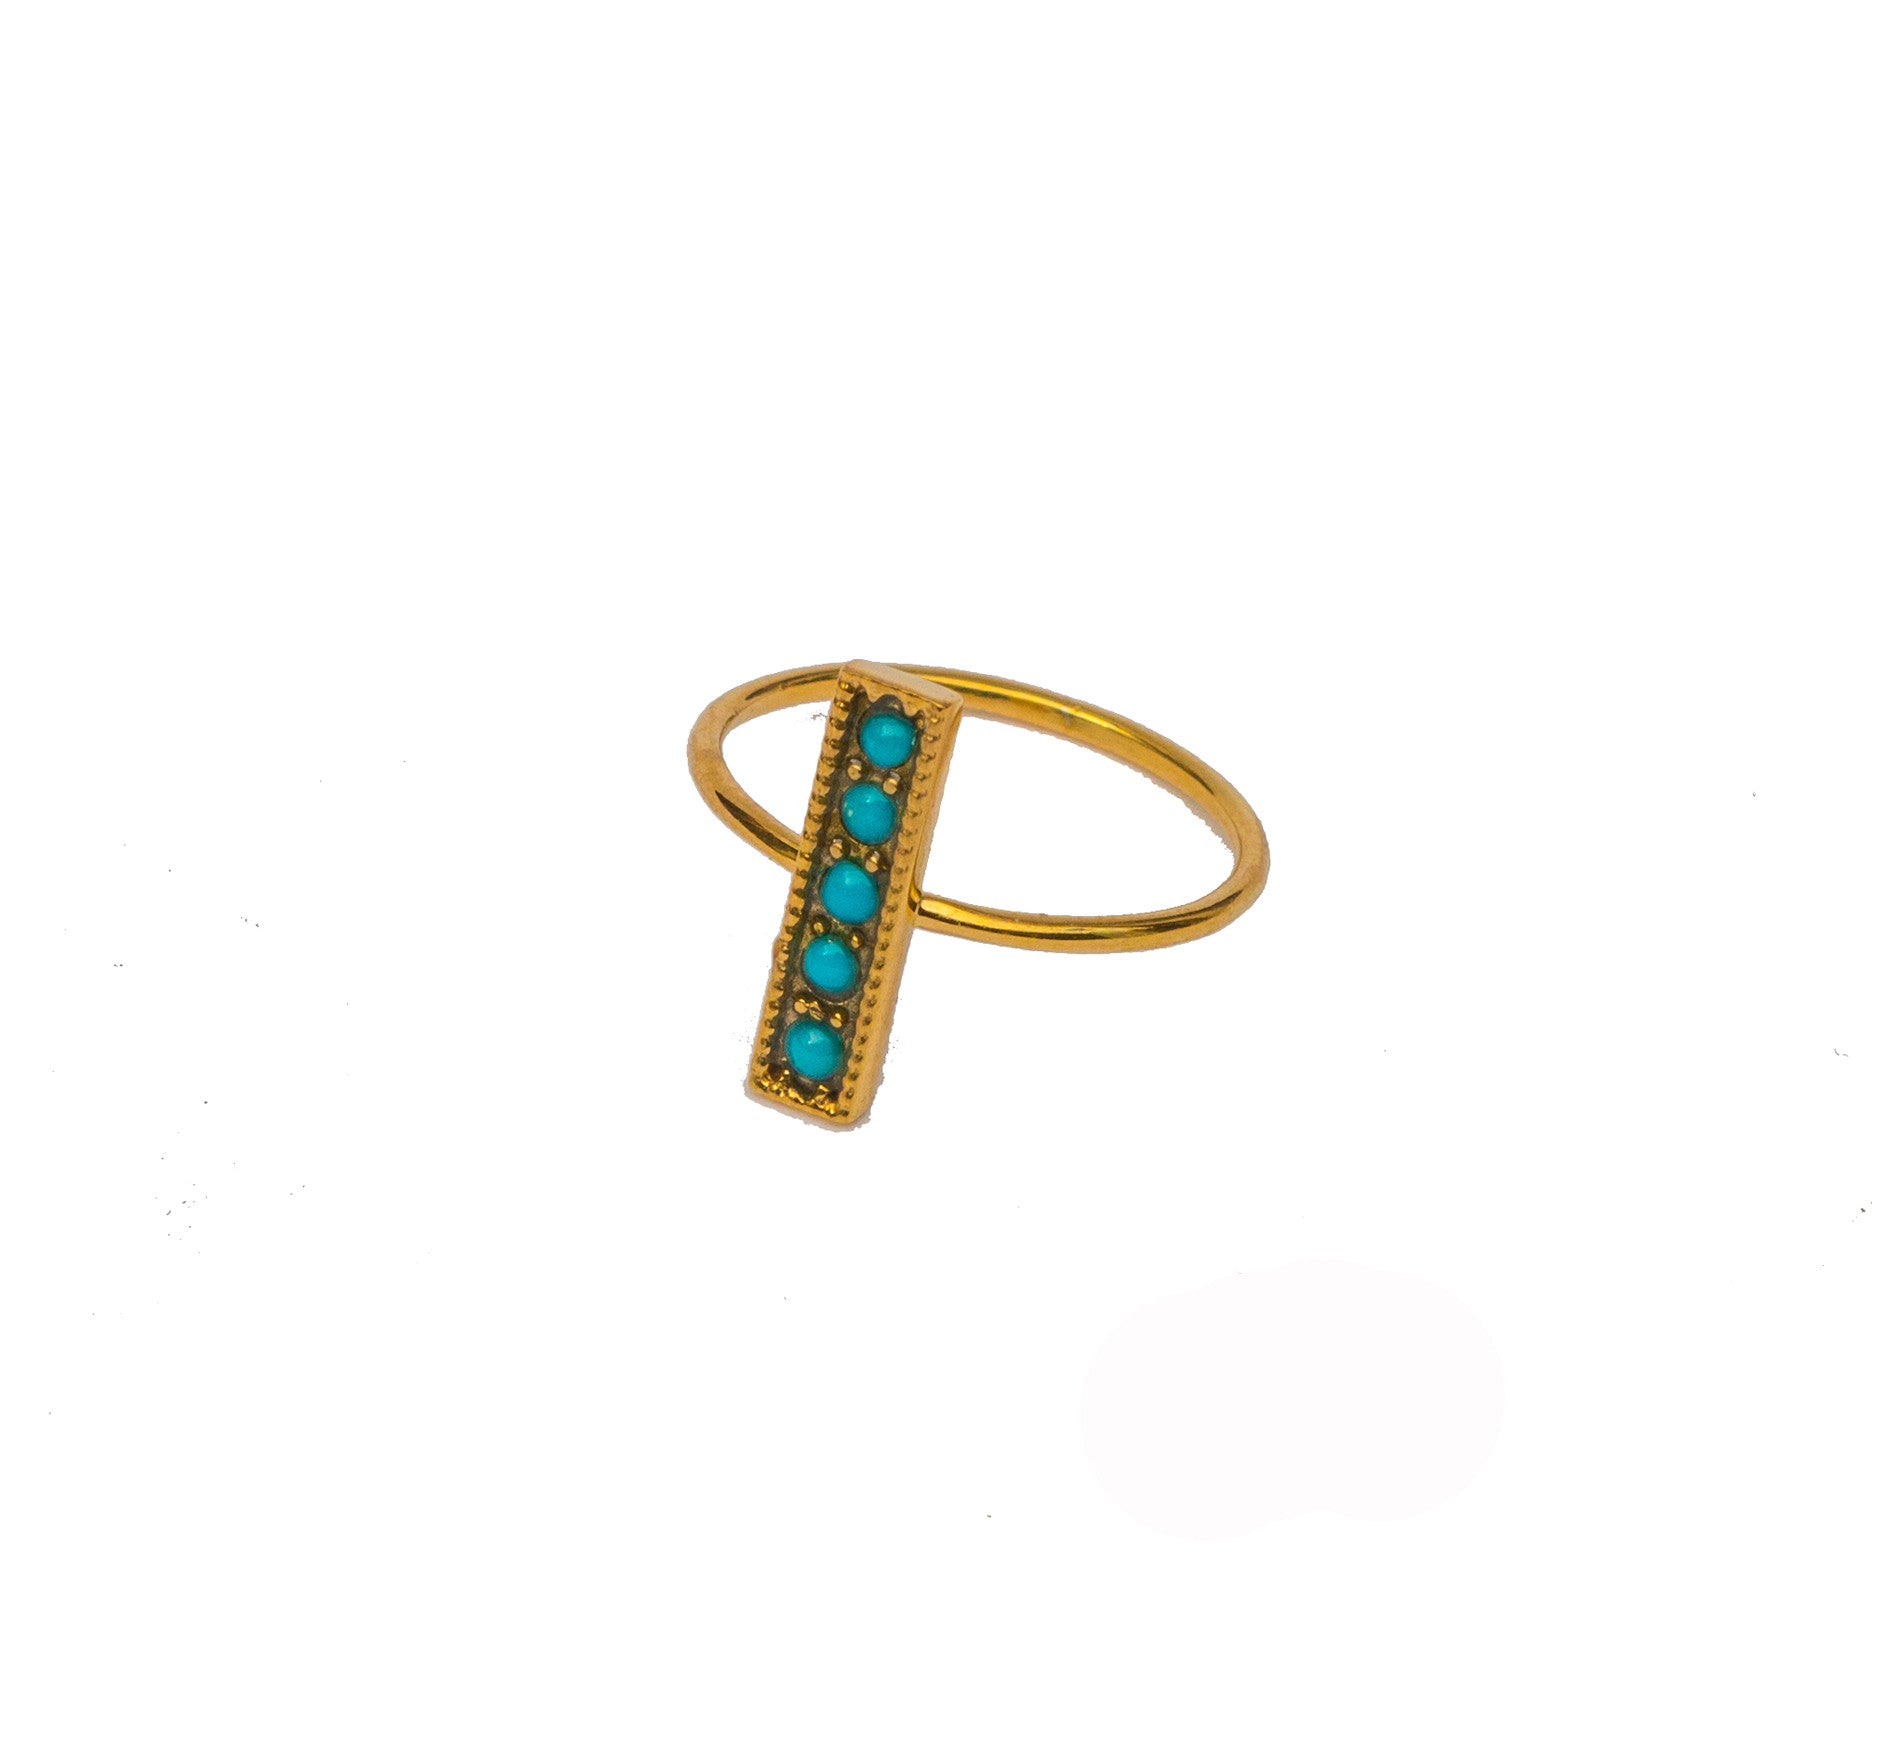 Coco\'s Liberty: Goddess ring | Jewelry -  Hiphunters Shop